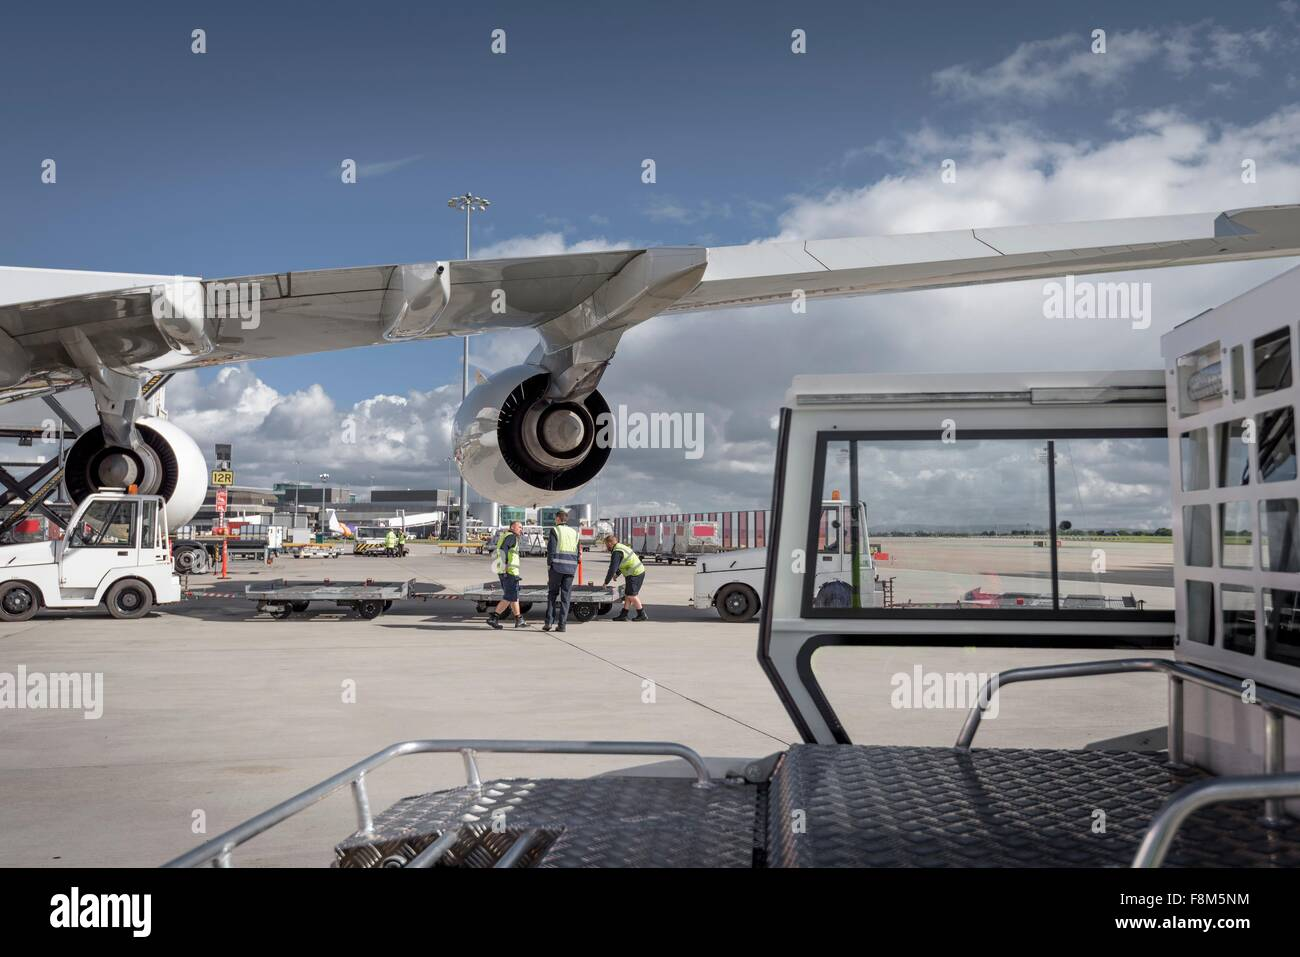 Ground crew loading A380 jet aircraft at airport - Stock Image